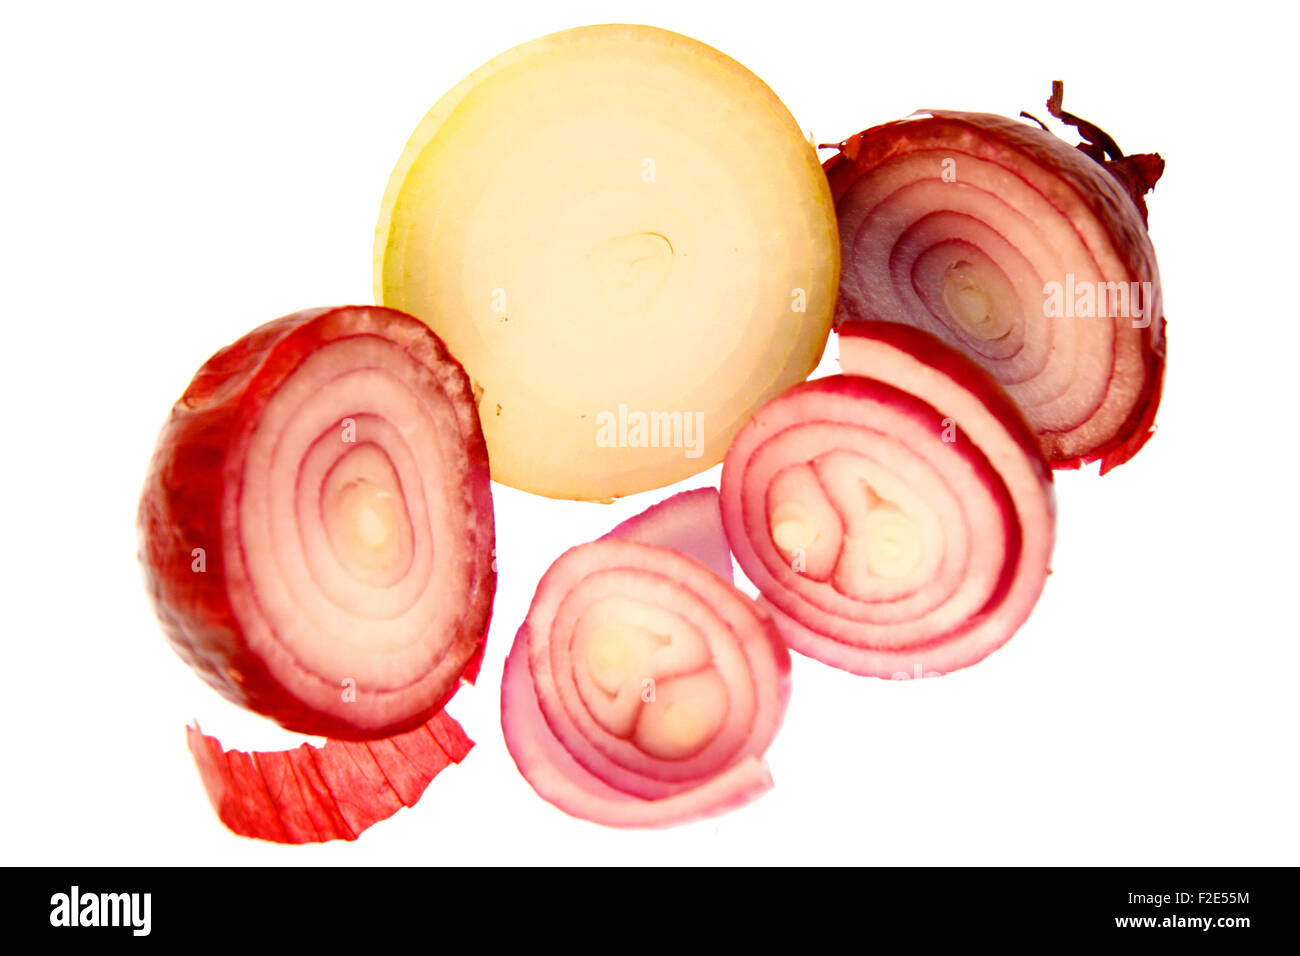 Rote Küchenzwiebel Zwieb Stock Photos Zwieb Stock Images Alamy